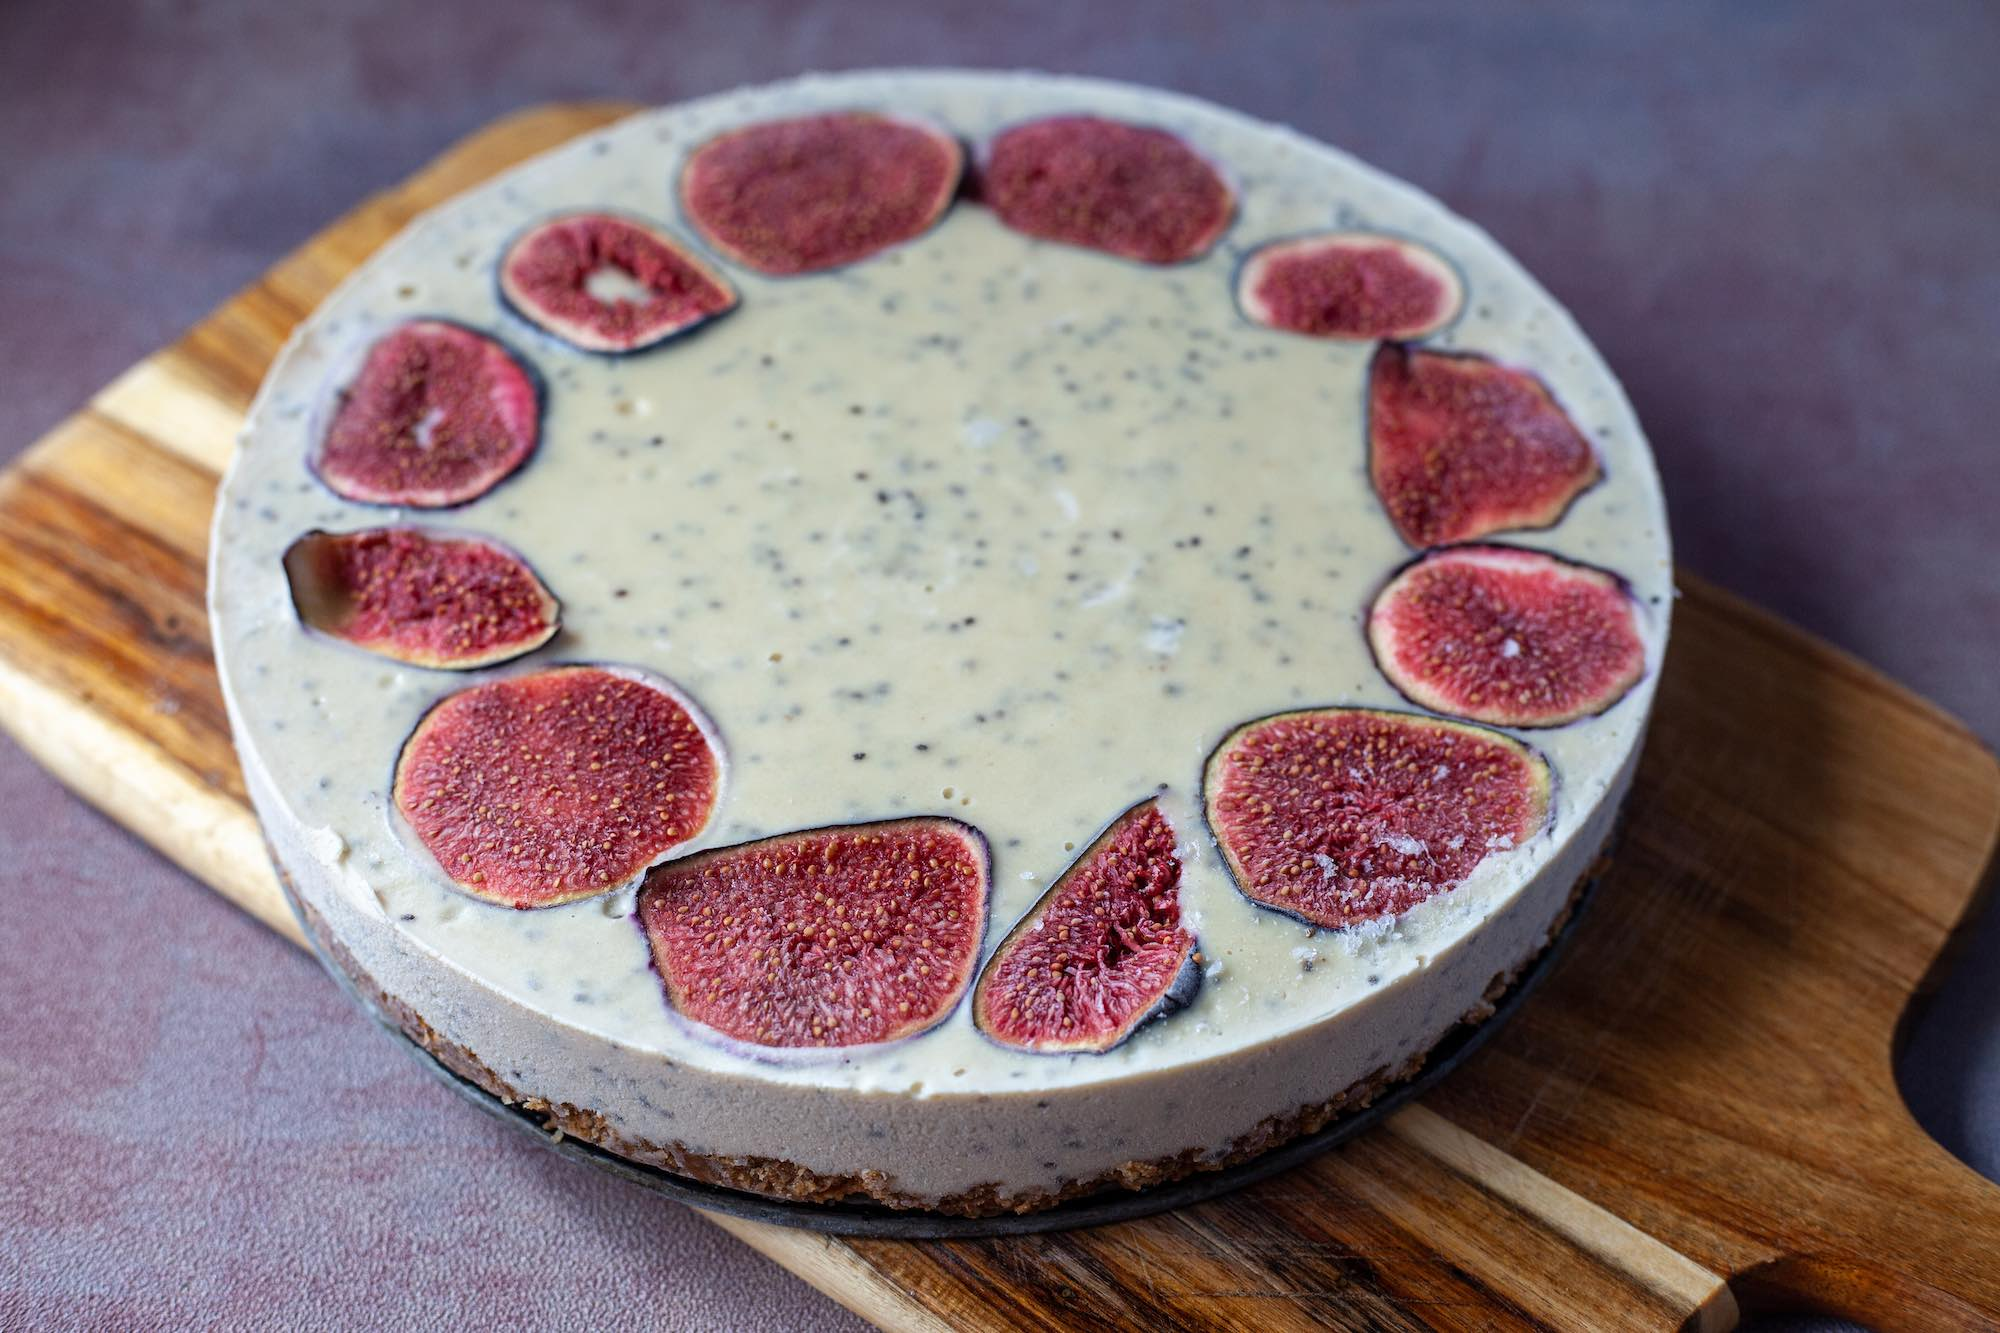 Vegan Cheesecake with Figs